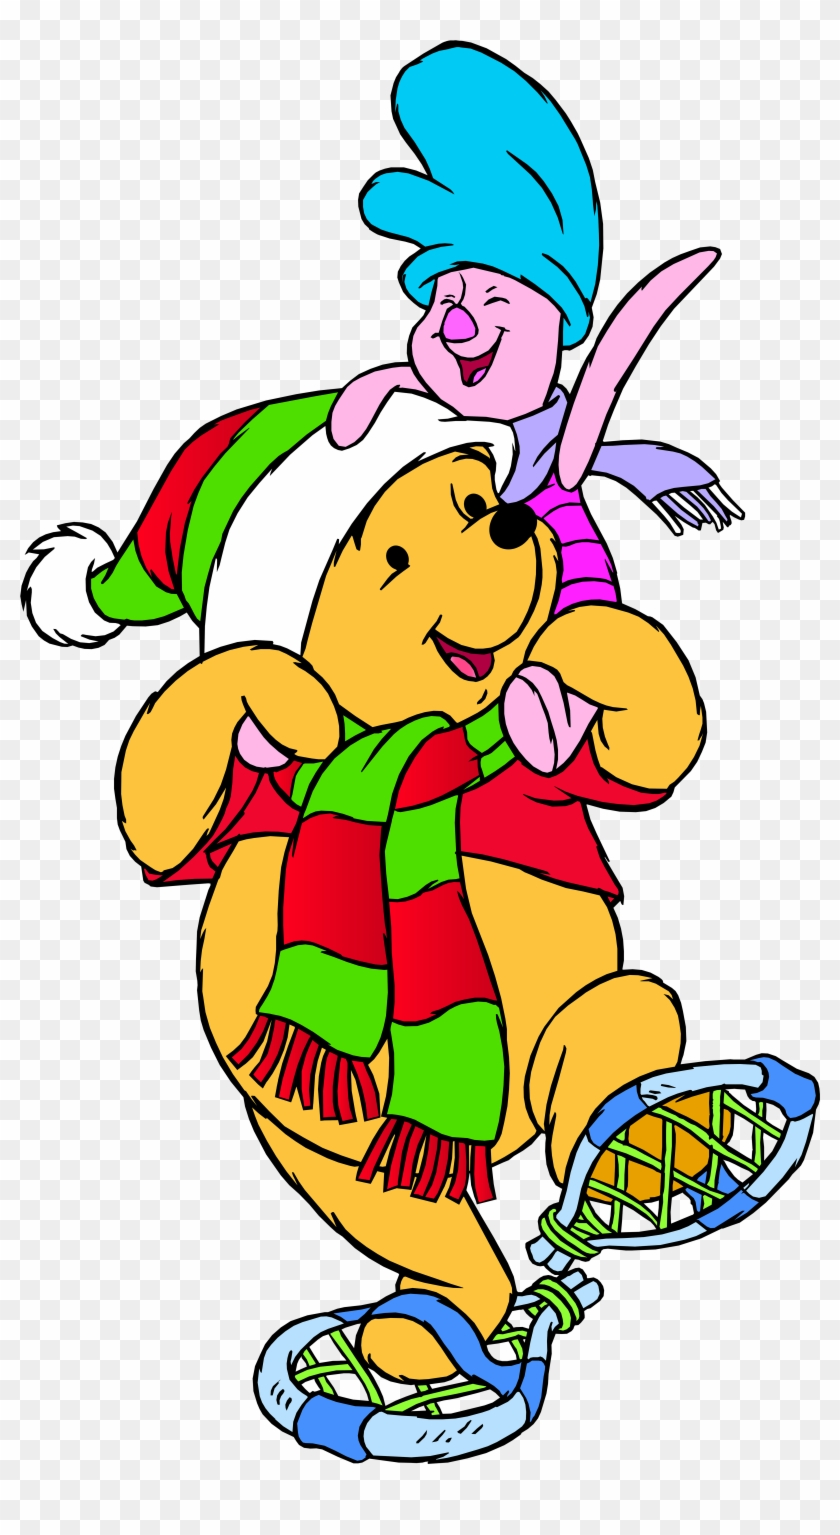 Winnie The Pooh And Piglet Winter Png Clip Art - Winnie The Pooh Winter #397672